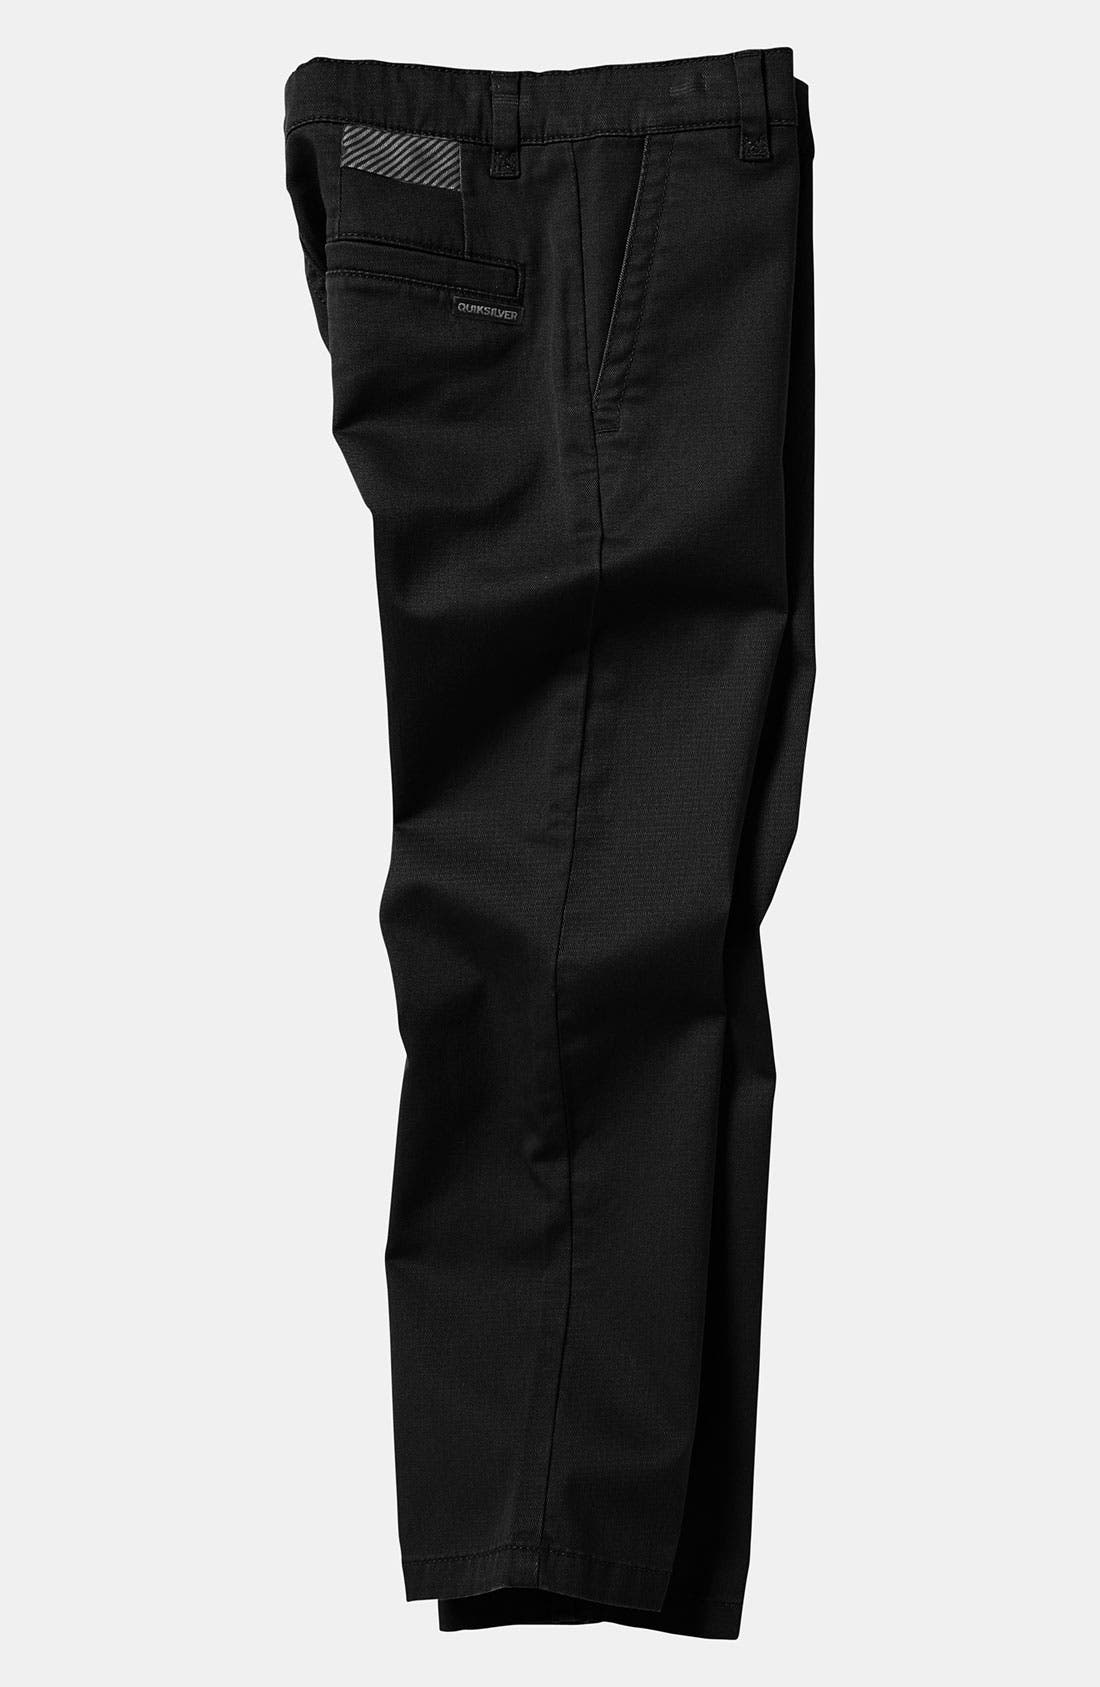 Alternate Image 3  - Quiksilver 'Box Wire' Chino Pants (Toddler)